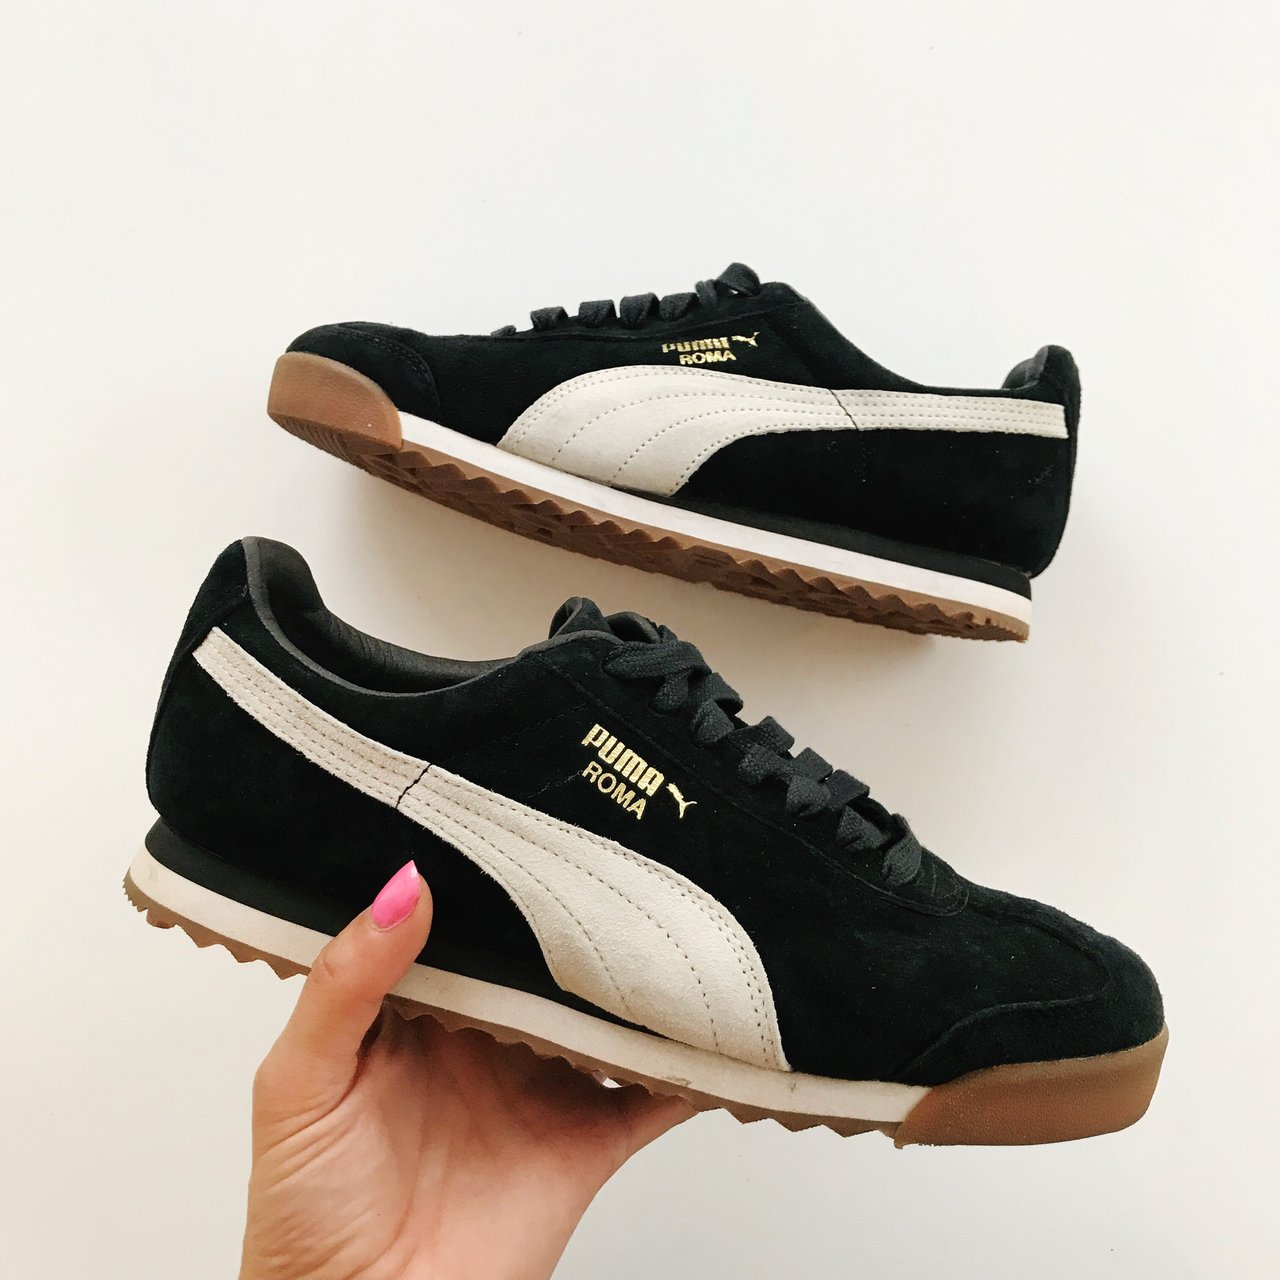 40e1d9d6a Puma Roma Suede Trainers in UK 5. True to size. Only worn - Depop